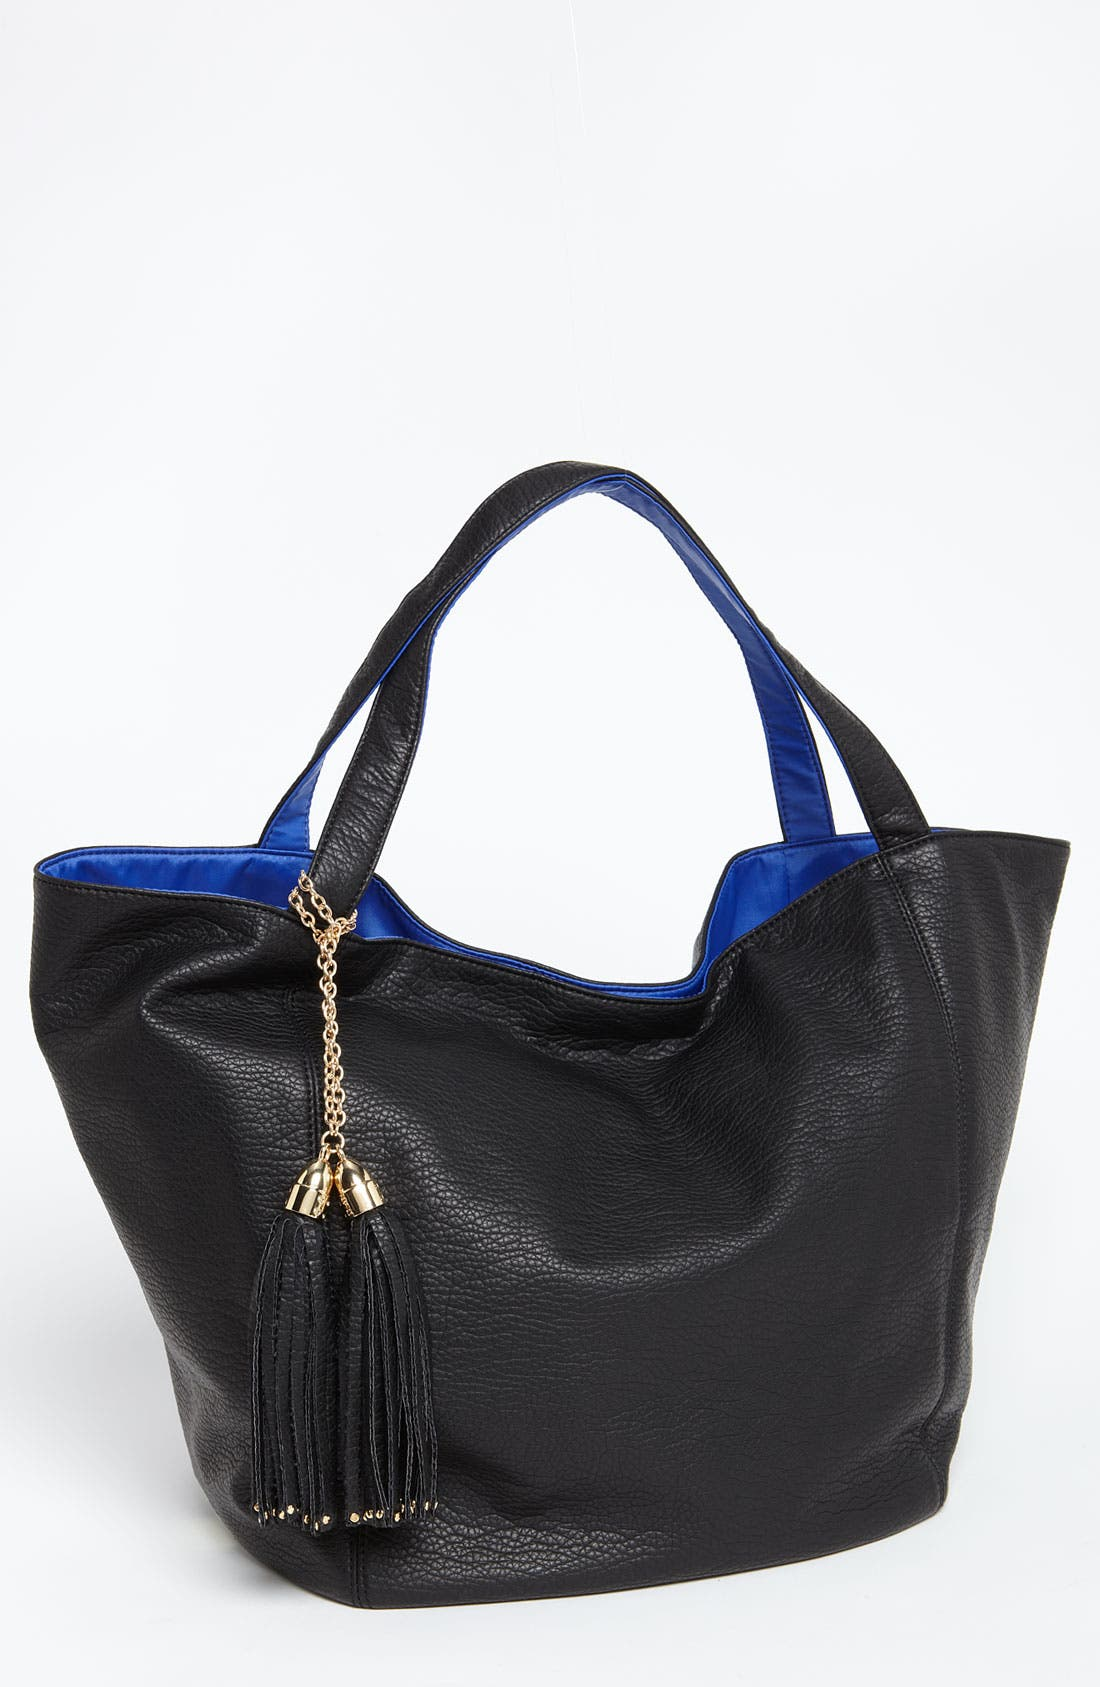 Alternate Image 1 Selected - Deux Lux 'Juno' Faux Leather Tote